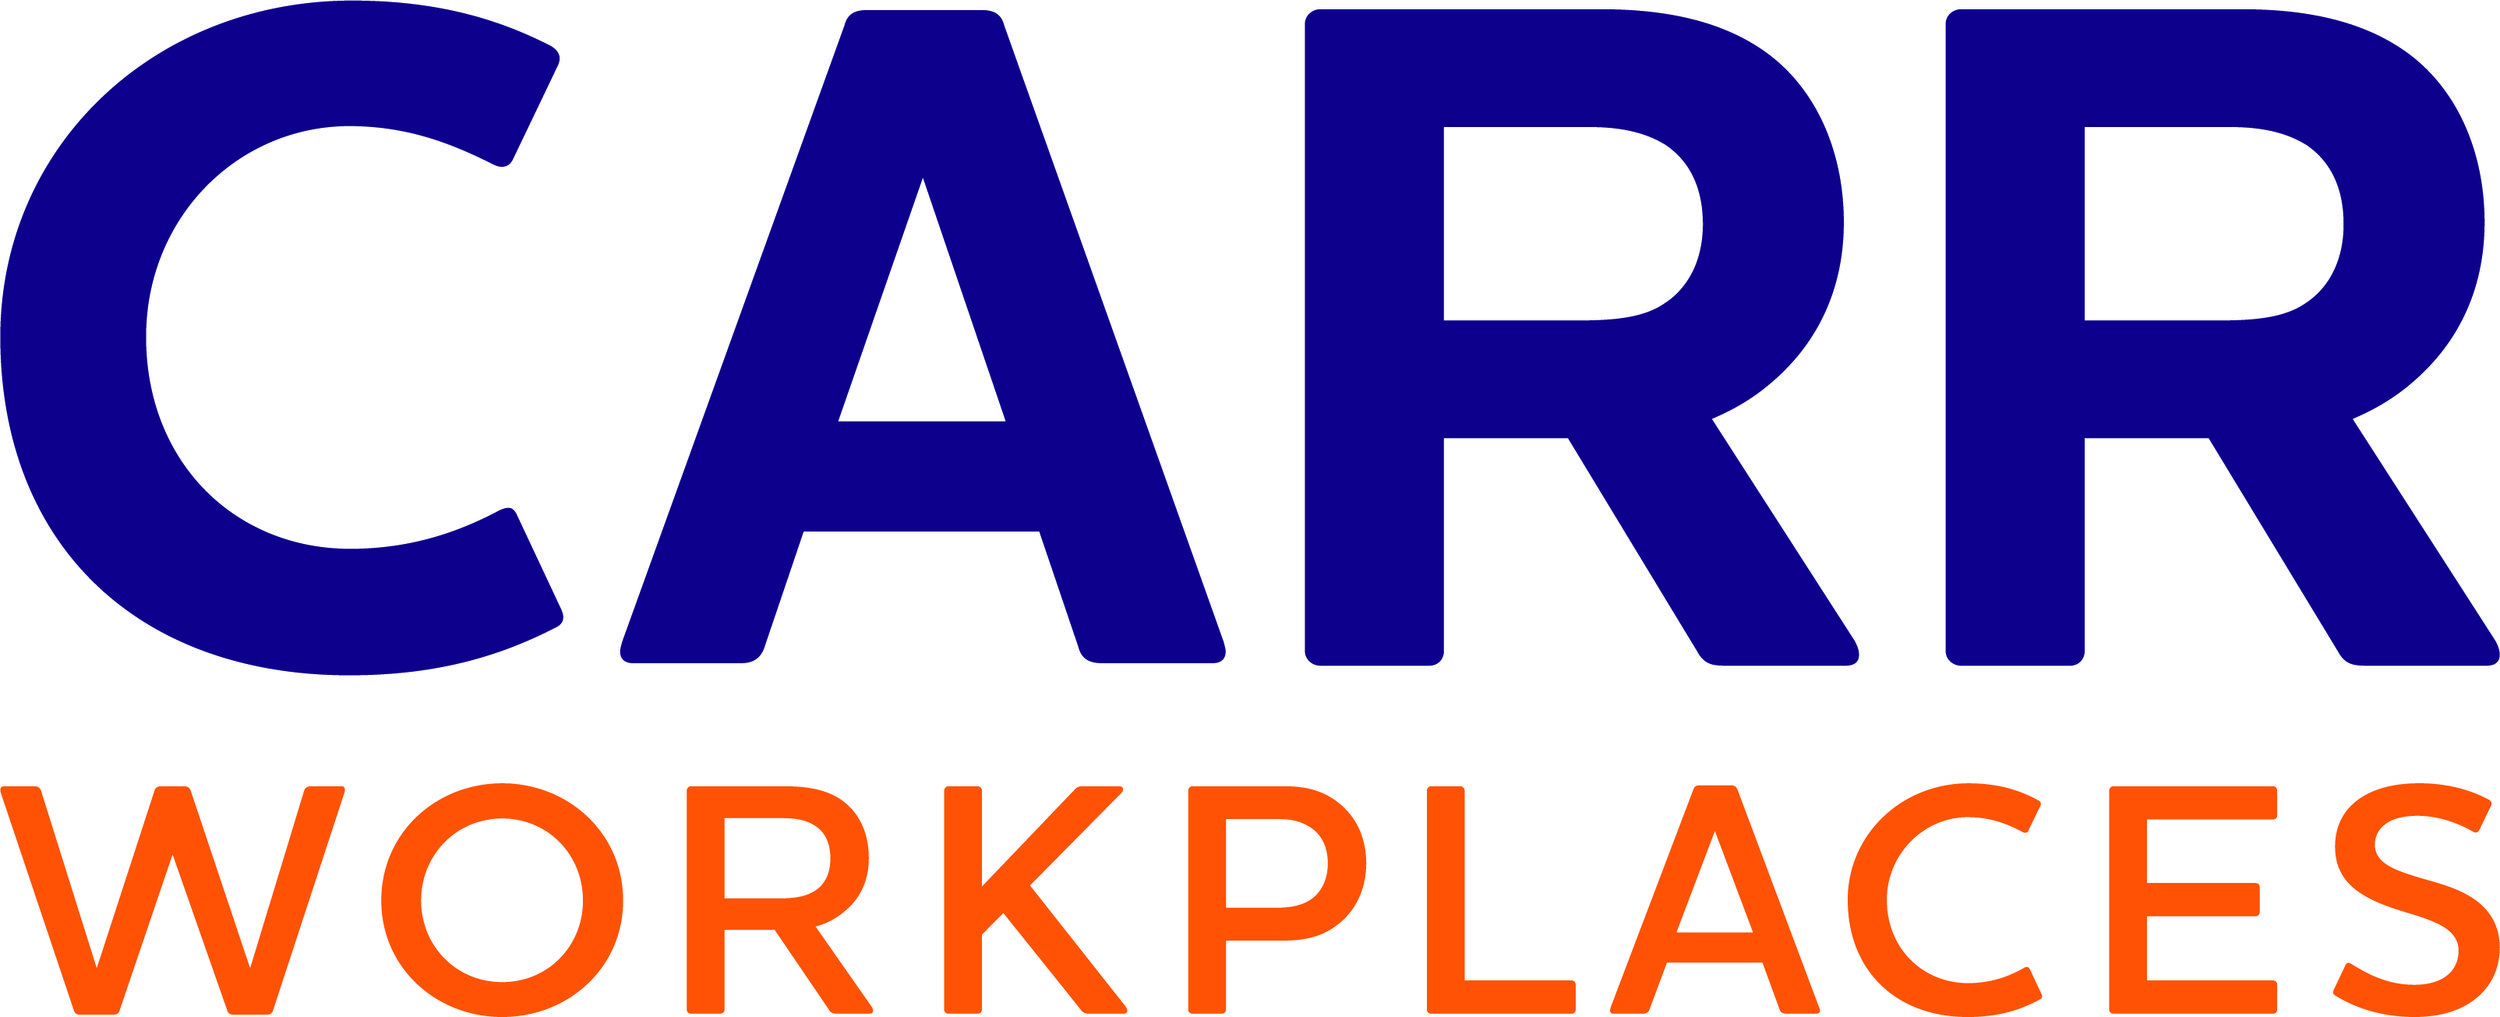 carr workplaces logo-large (1).jpg